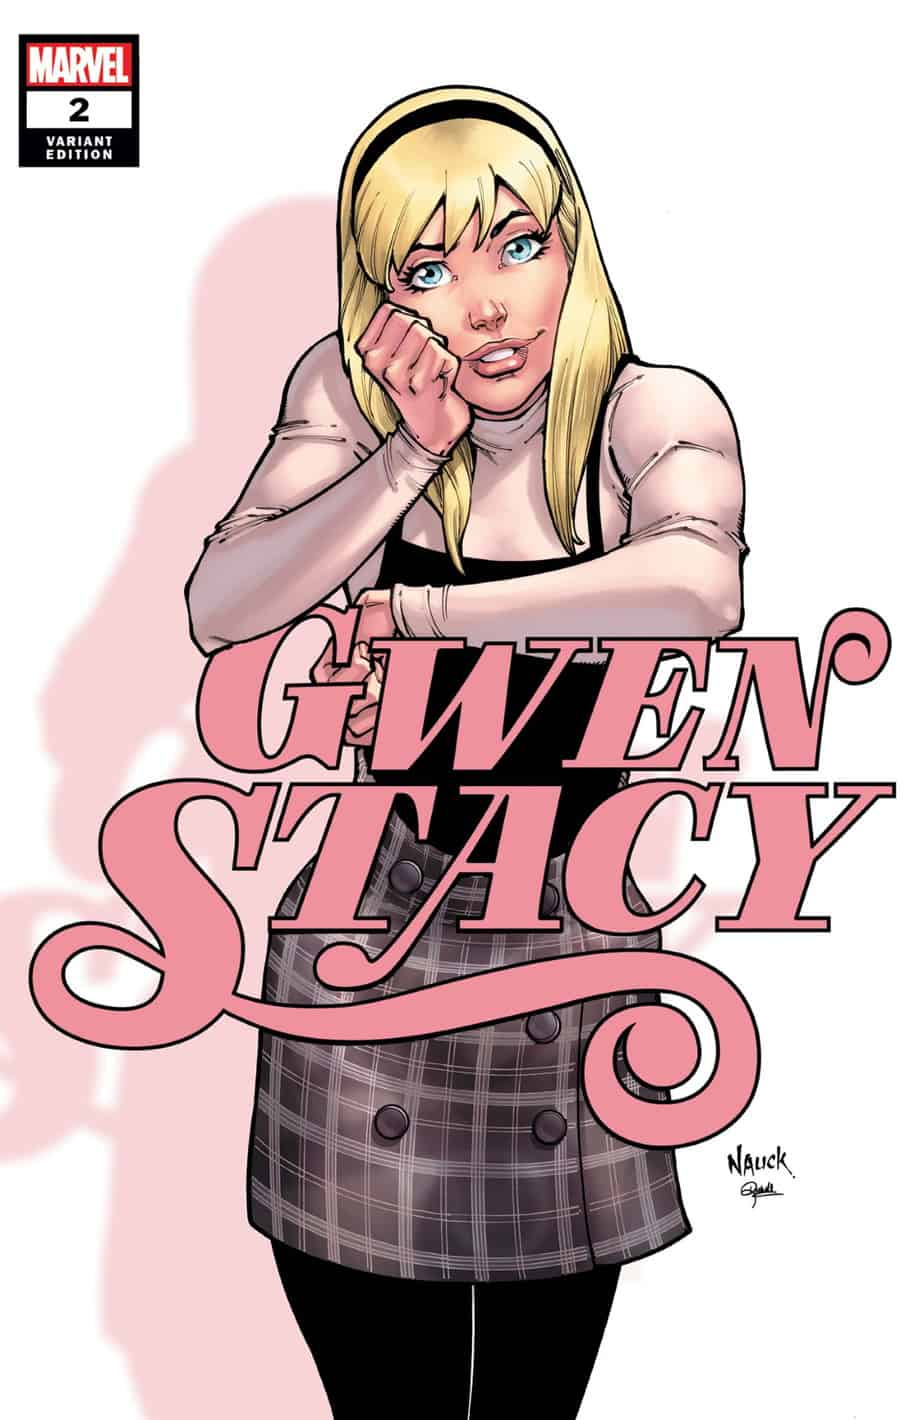 GWEN STACY #2 - Cover D